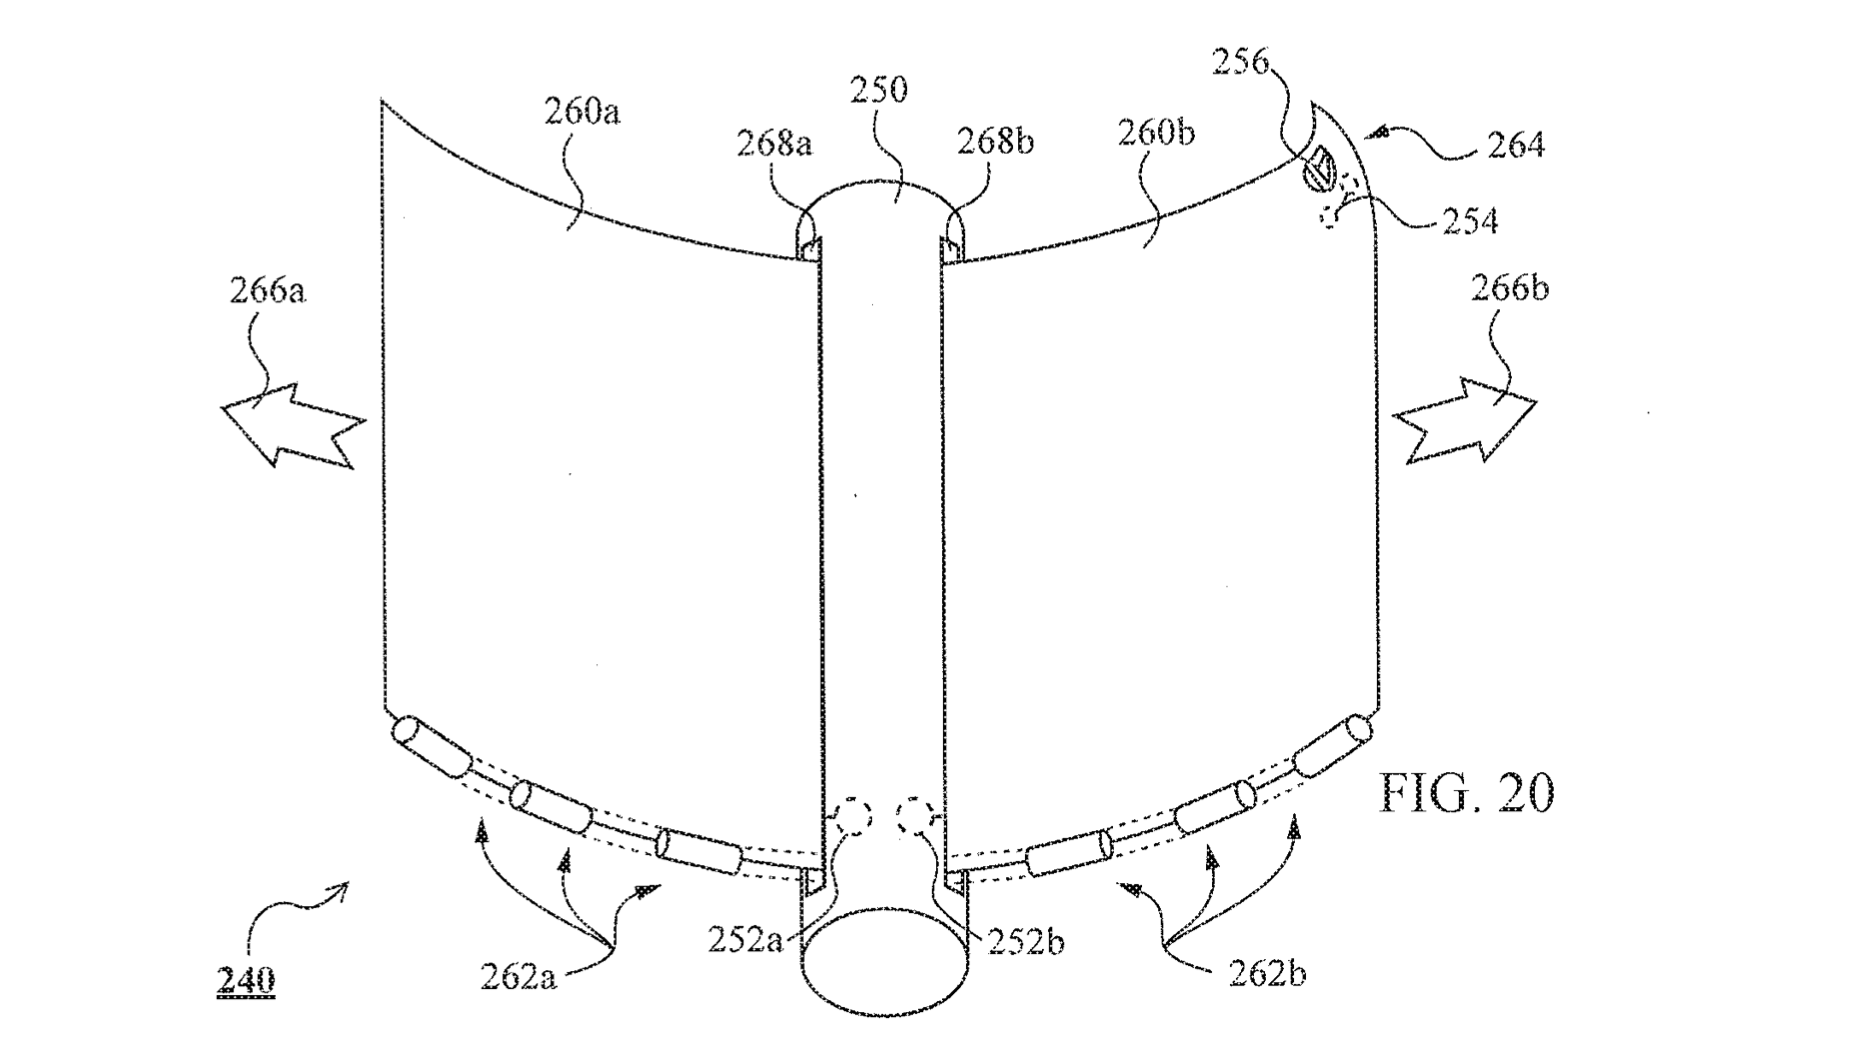 Samsung patent reveals hundreds of bizarre drawings showing what the display on the Galaxy S11 could look like - Expert Reviews